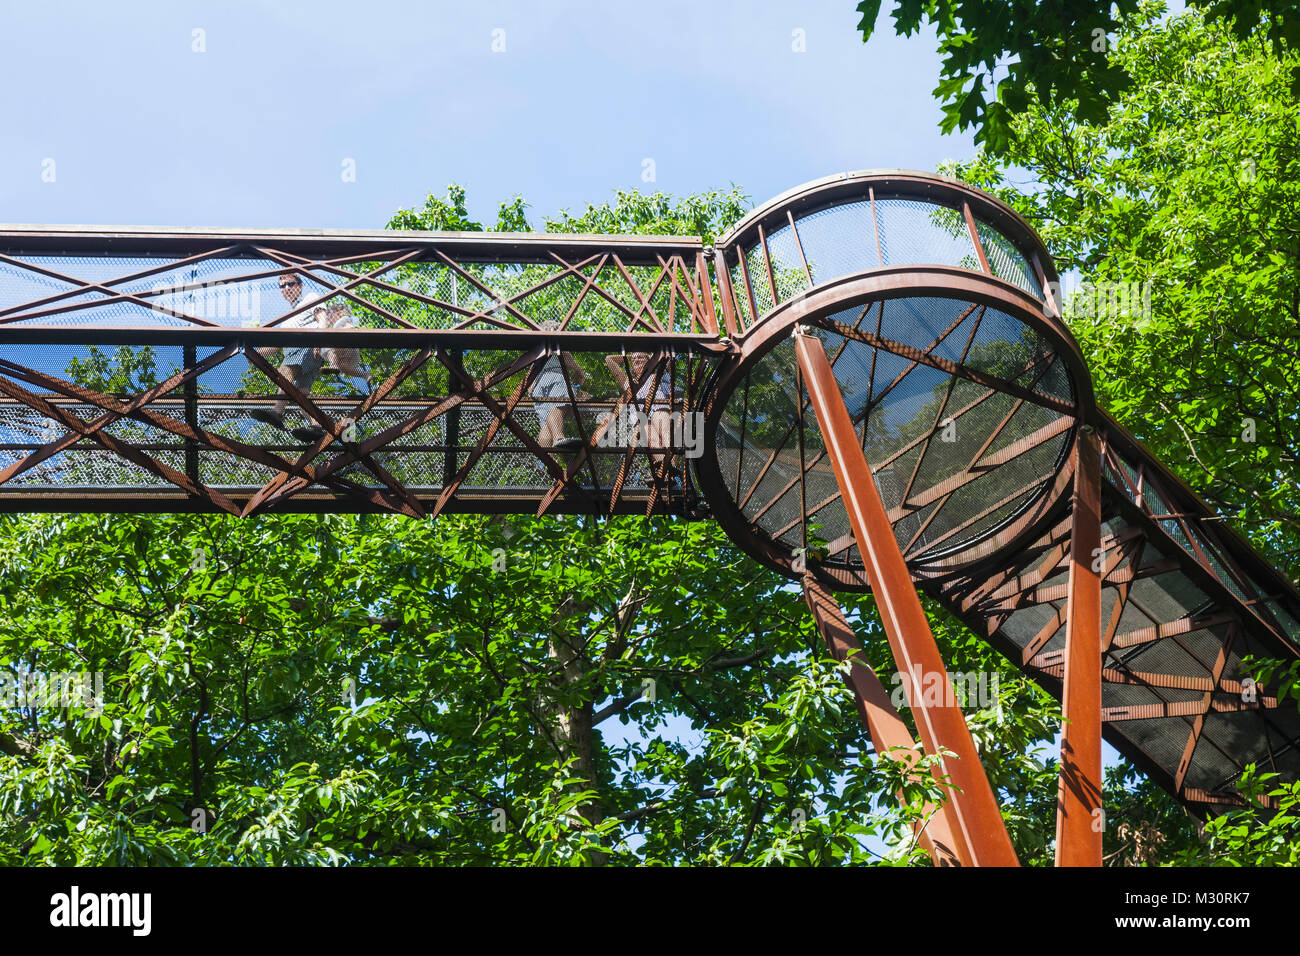 L'Angleterre, Londres, Richmond, Kew Gardens, le Treetop Walkway Photo Stock